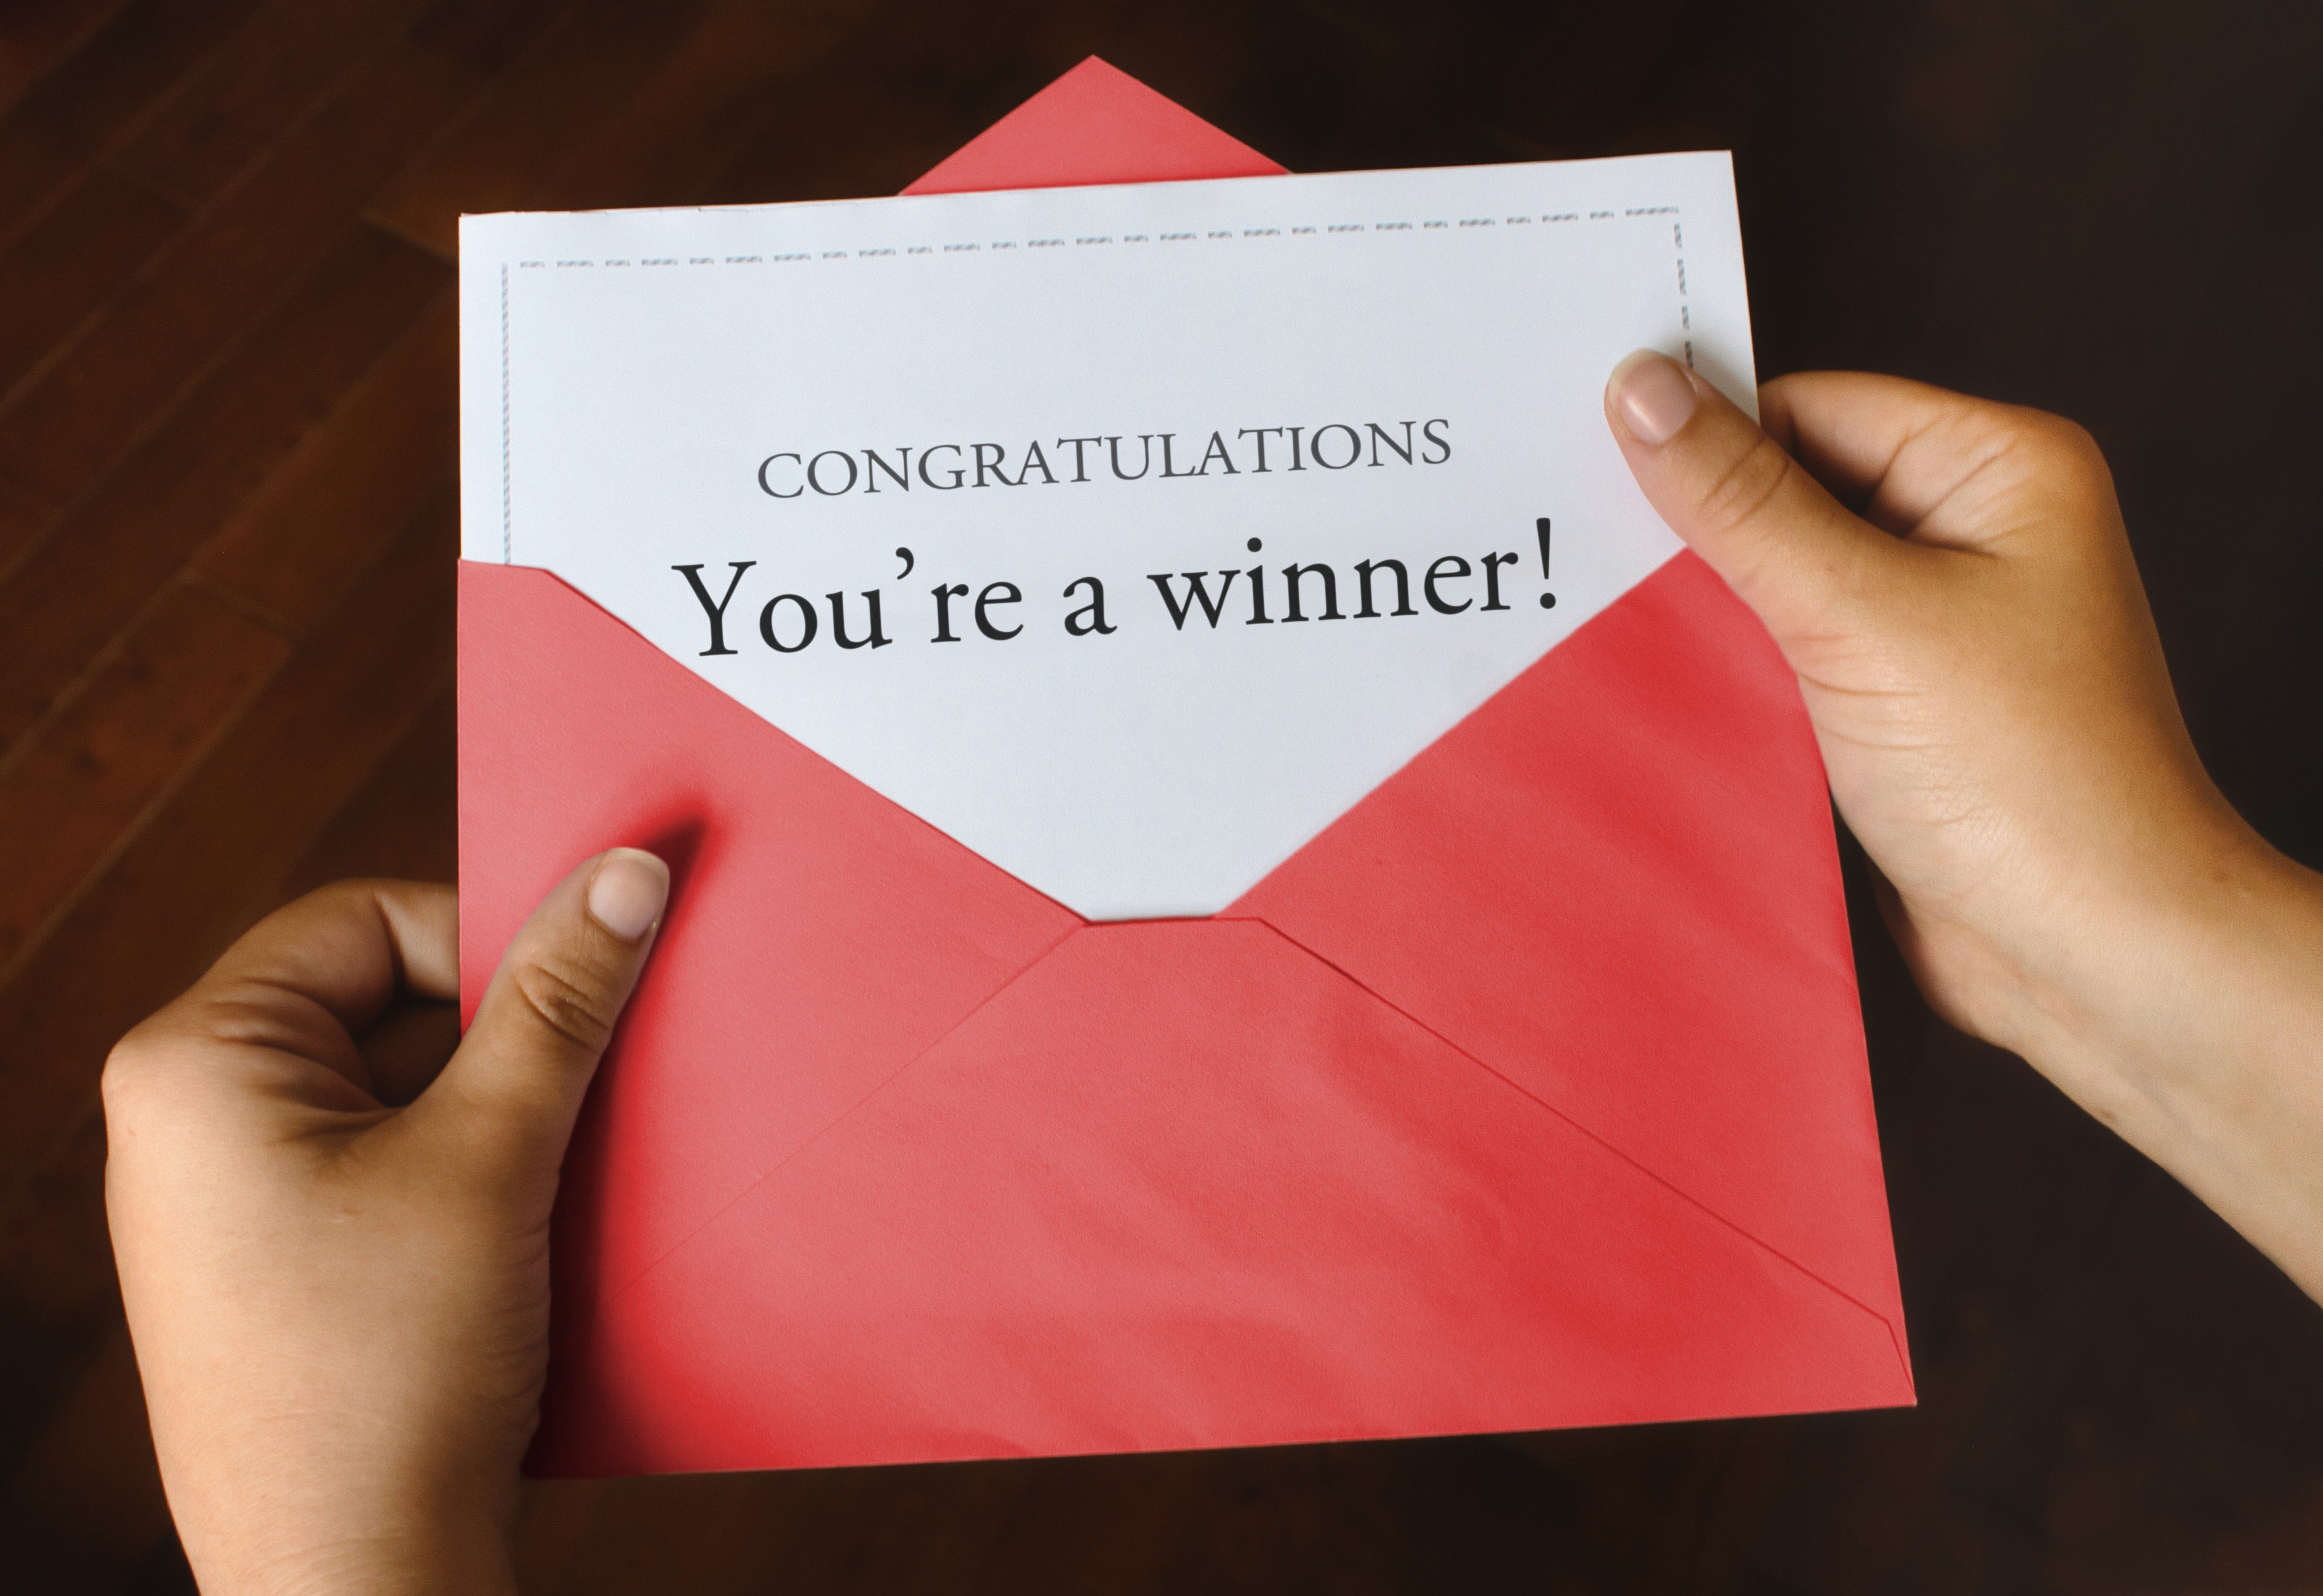 An open red envelope with a letter that says Congratulations You're a winner! with female hands holding it up